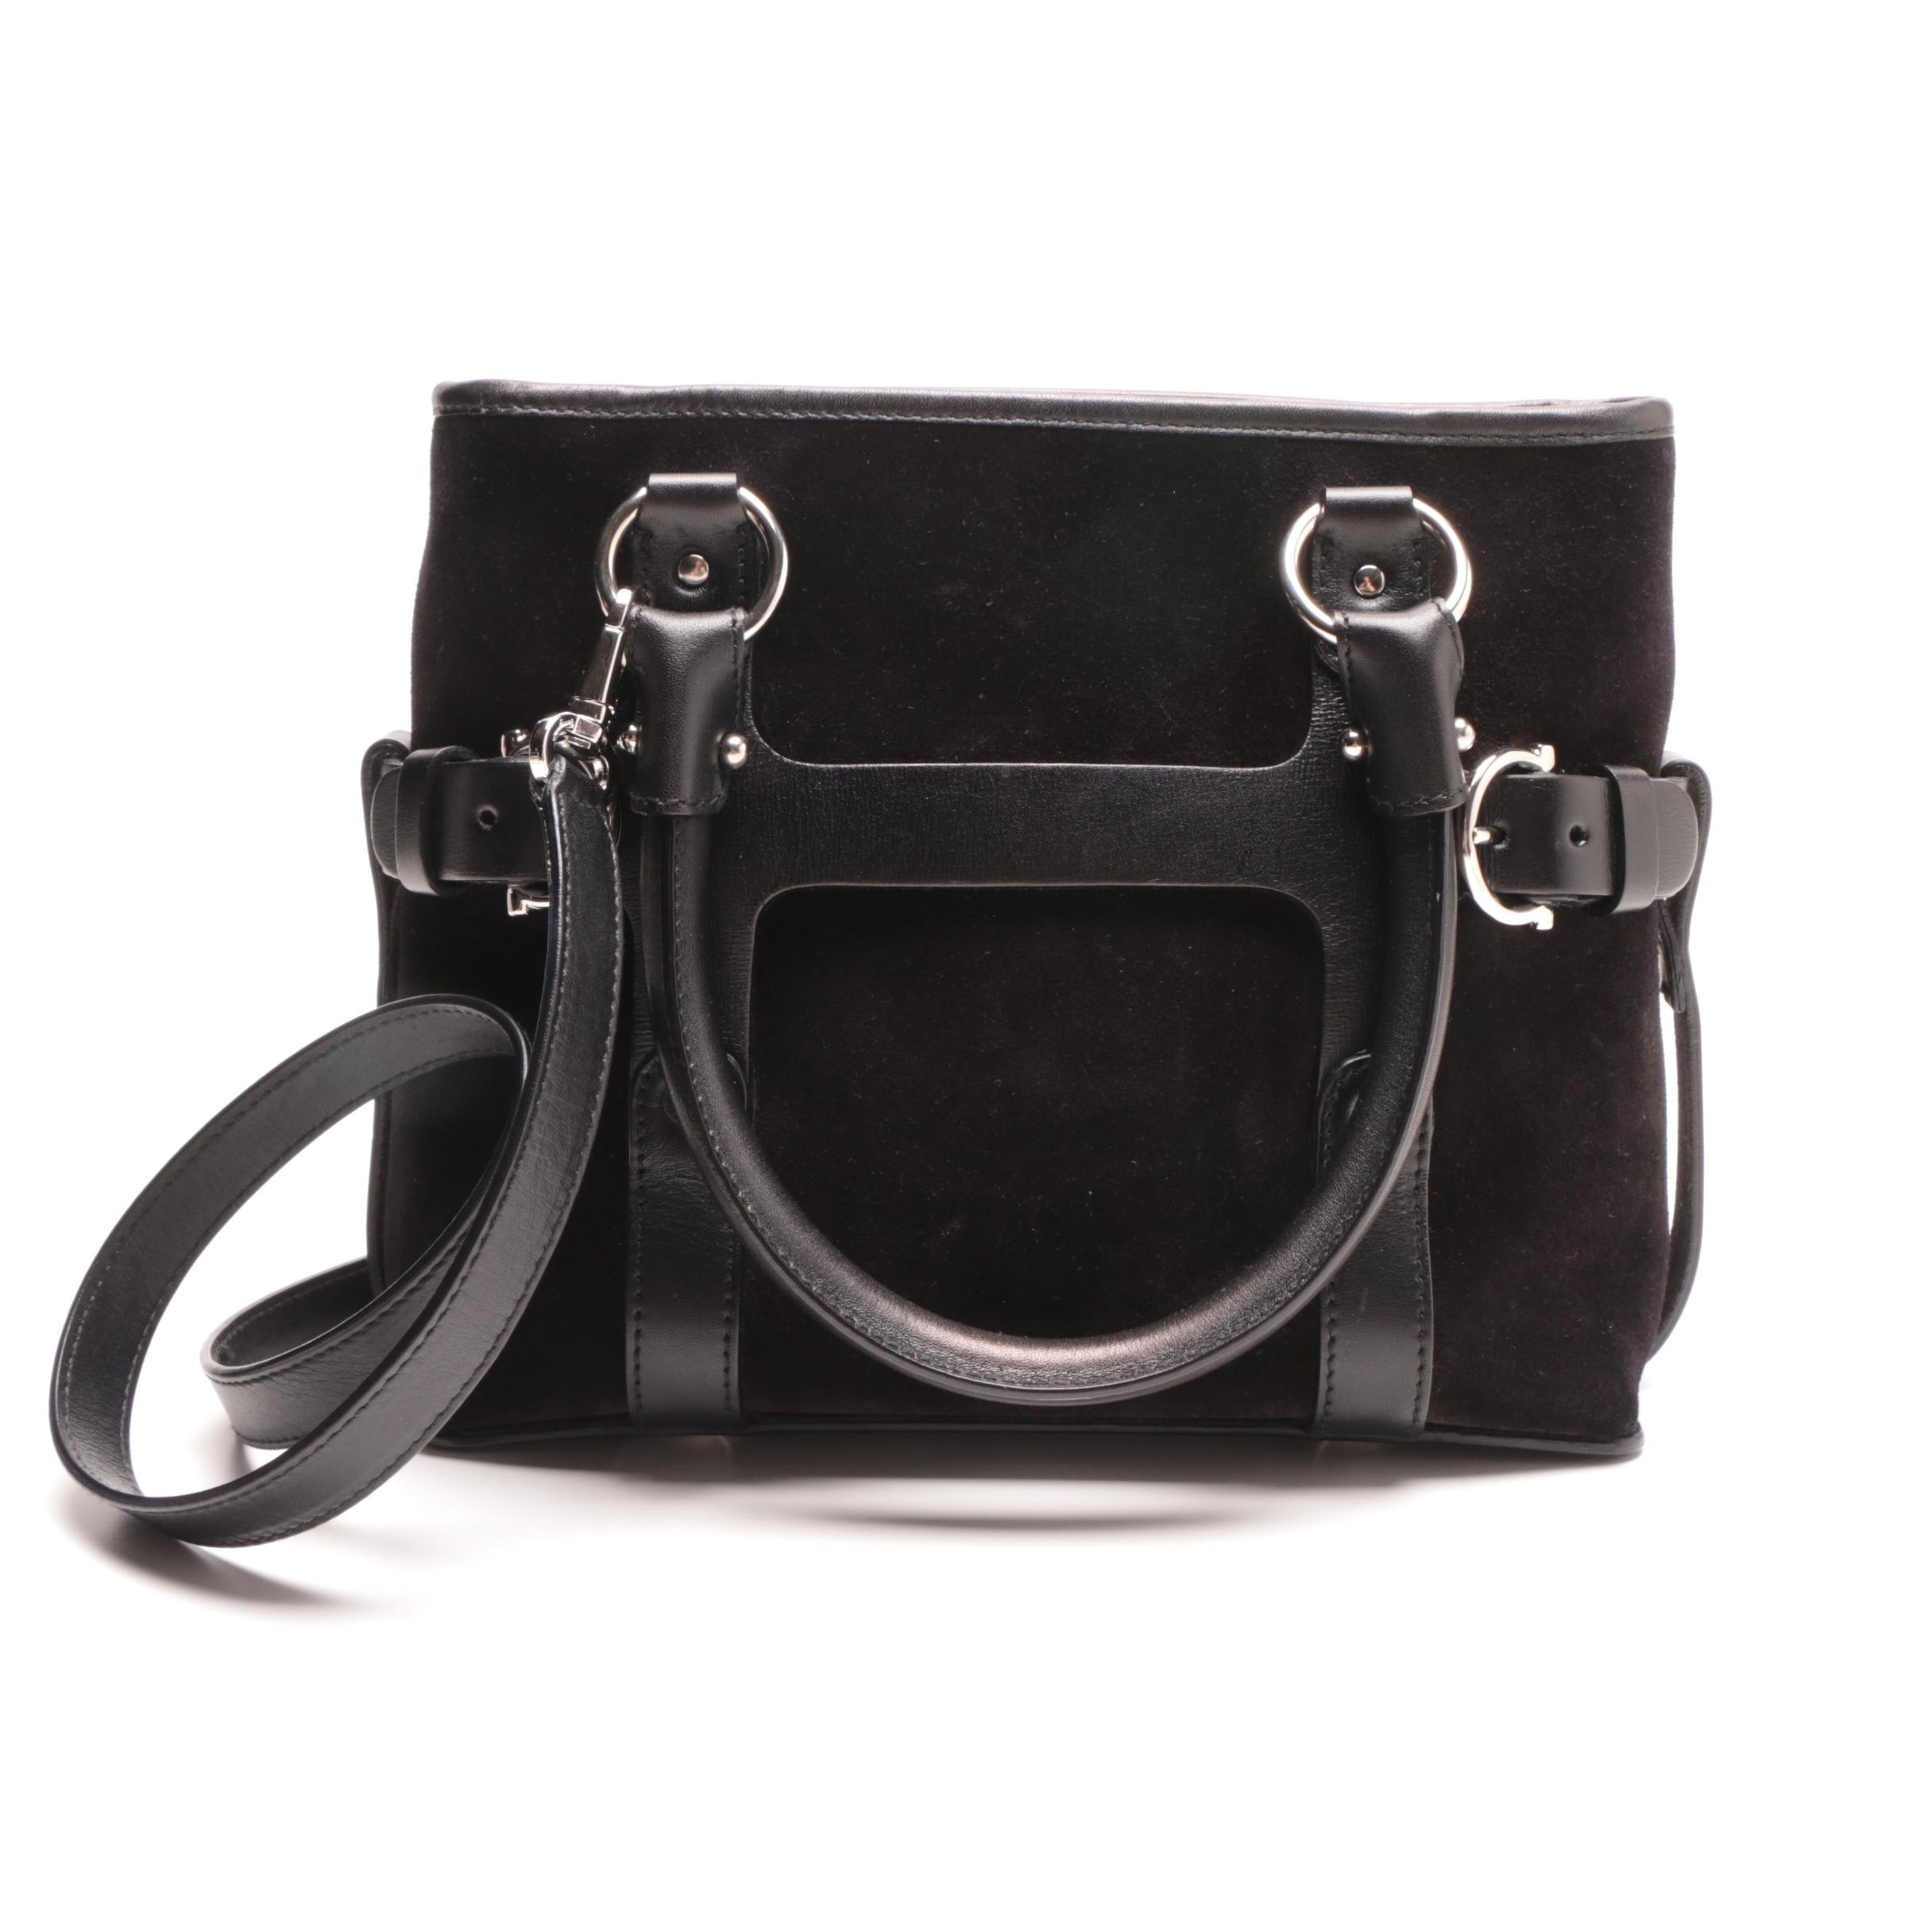 Salvatore Ferragamo Black Suede and Leather Handbag